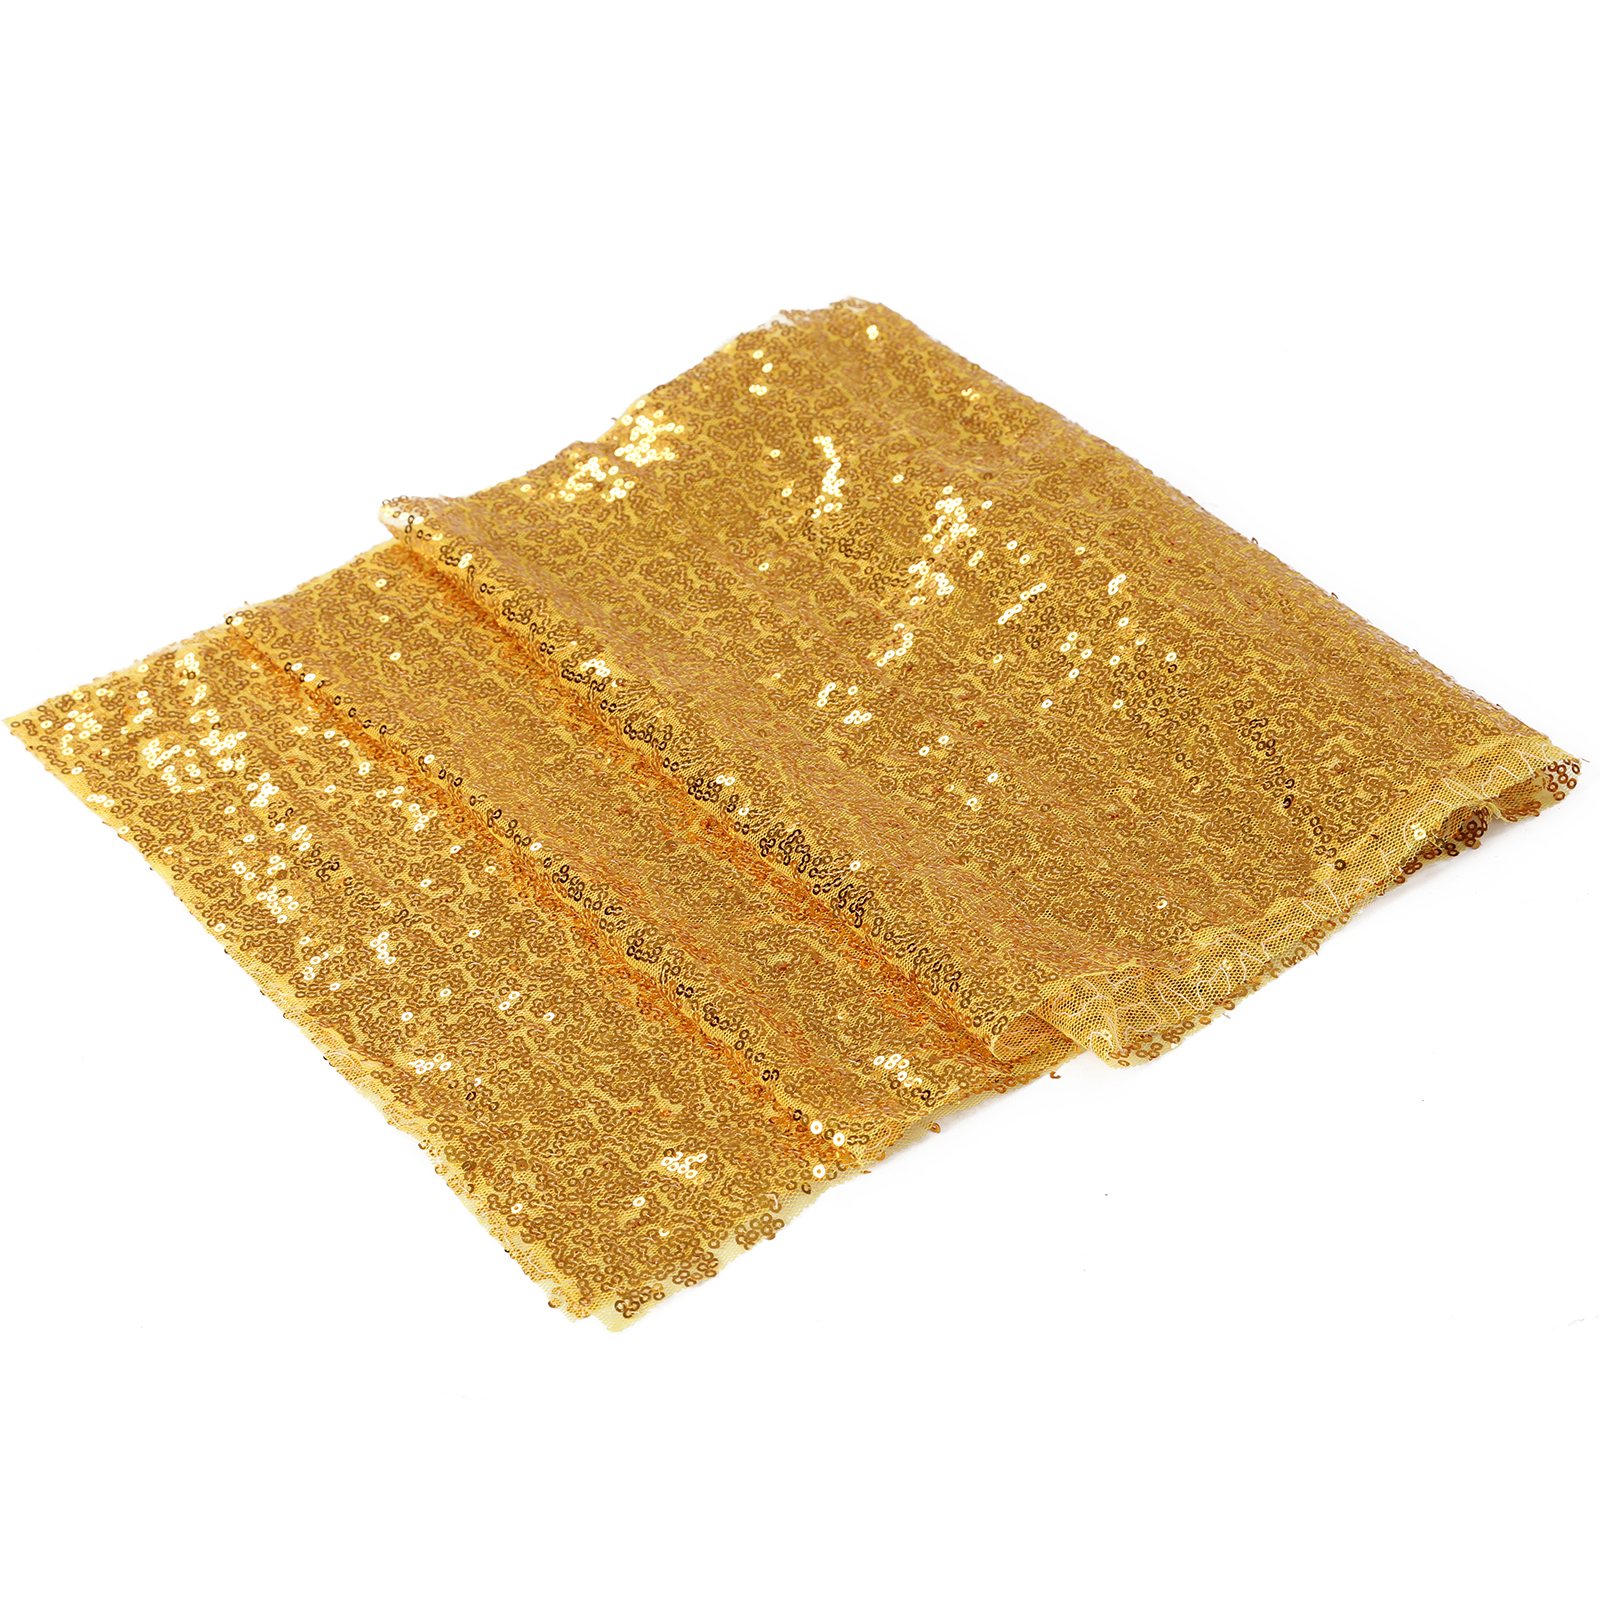 Gold-Silver-Glitter-Sequin-Table-Runner-Sparkly-Wedding-Party-Decor-12-034-x79-034-UK thumbnail 9